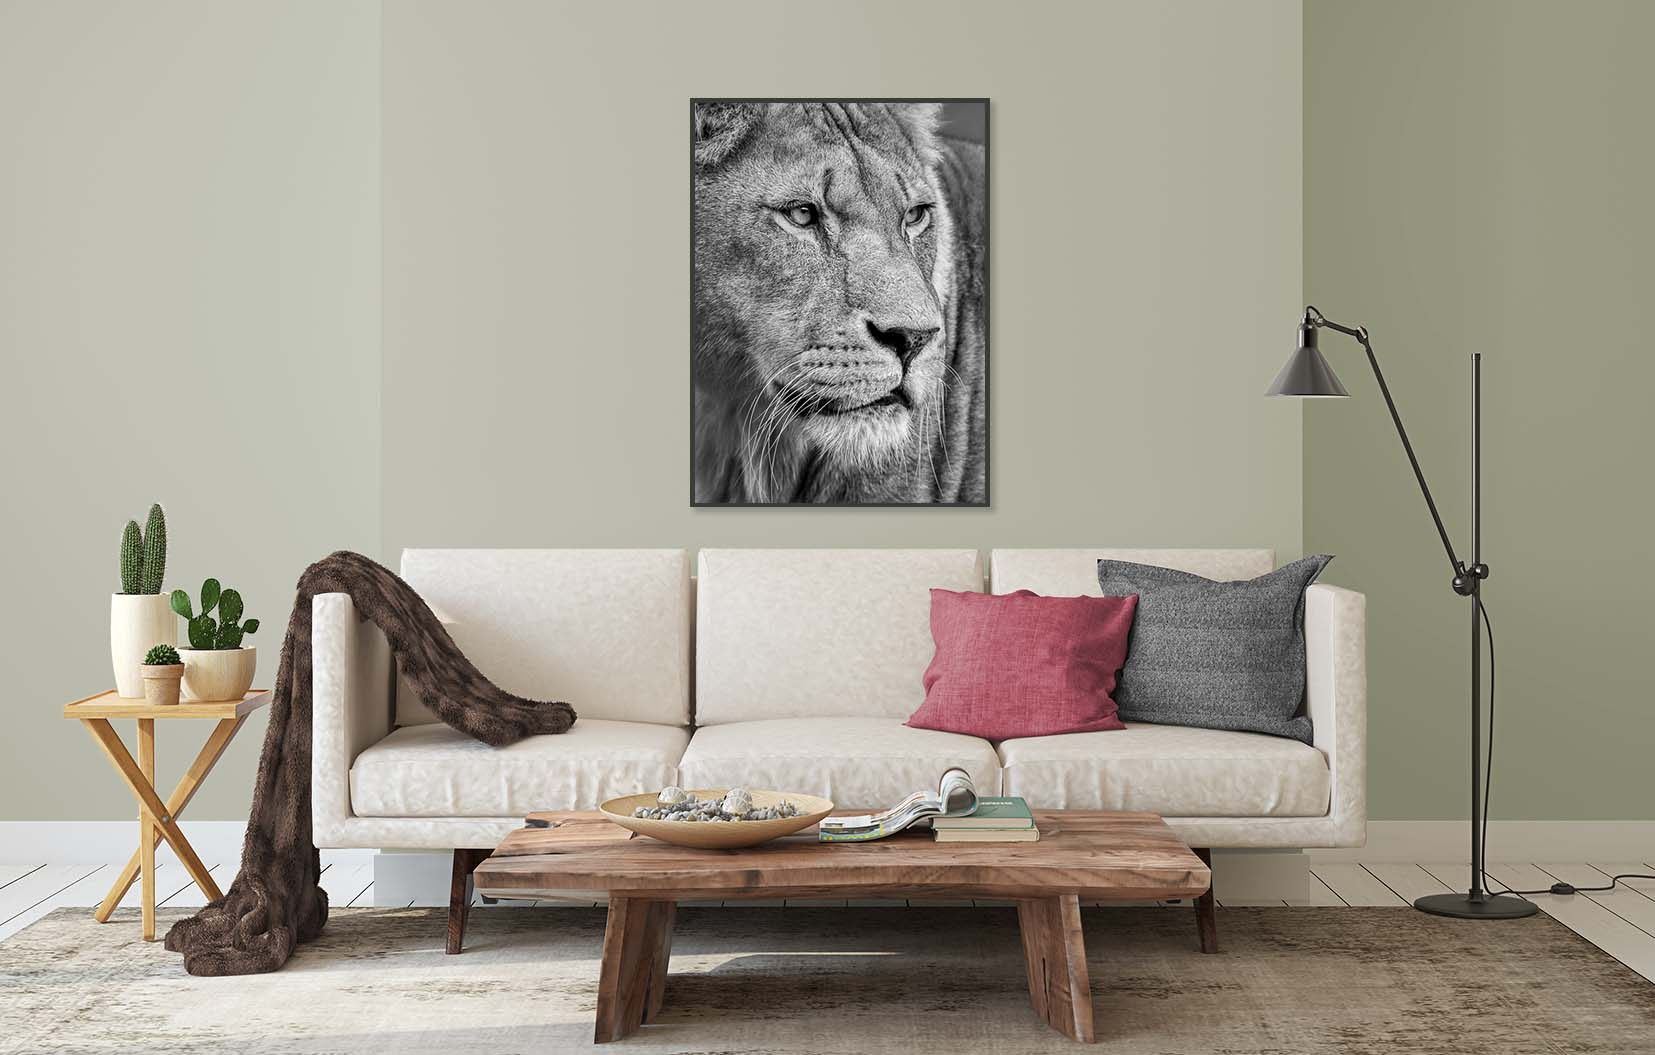 Black and white print of a Lioness watching shown on the wall in a living room. Limited edition photographic print by fine art photographer Paul Coghlin.